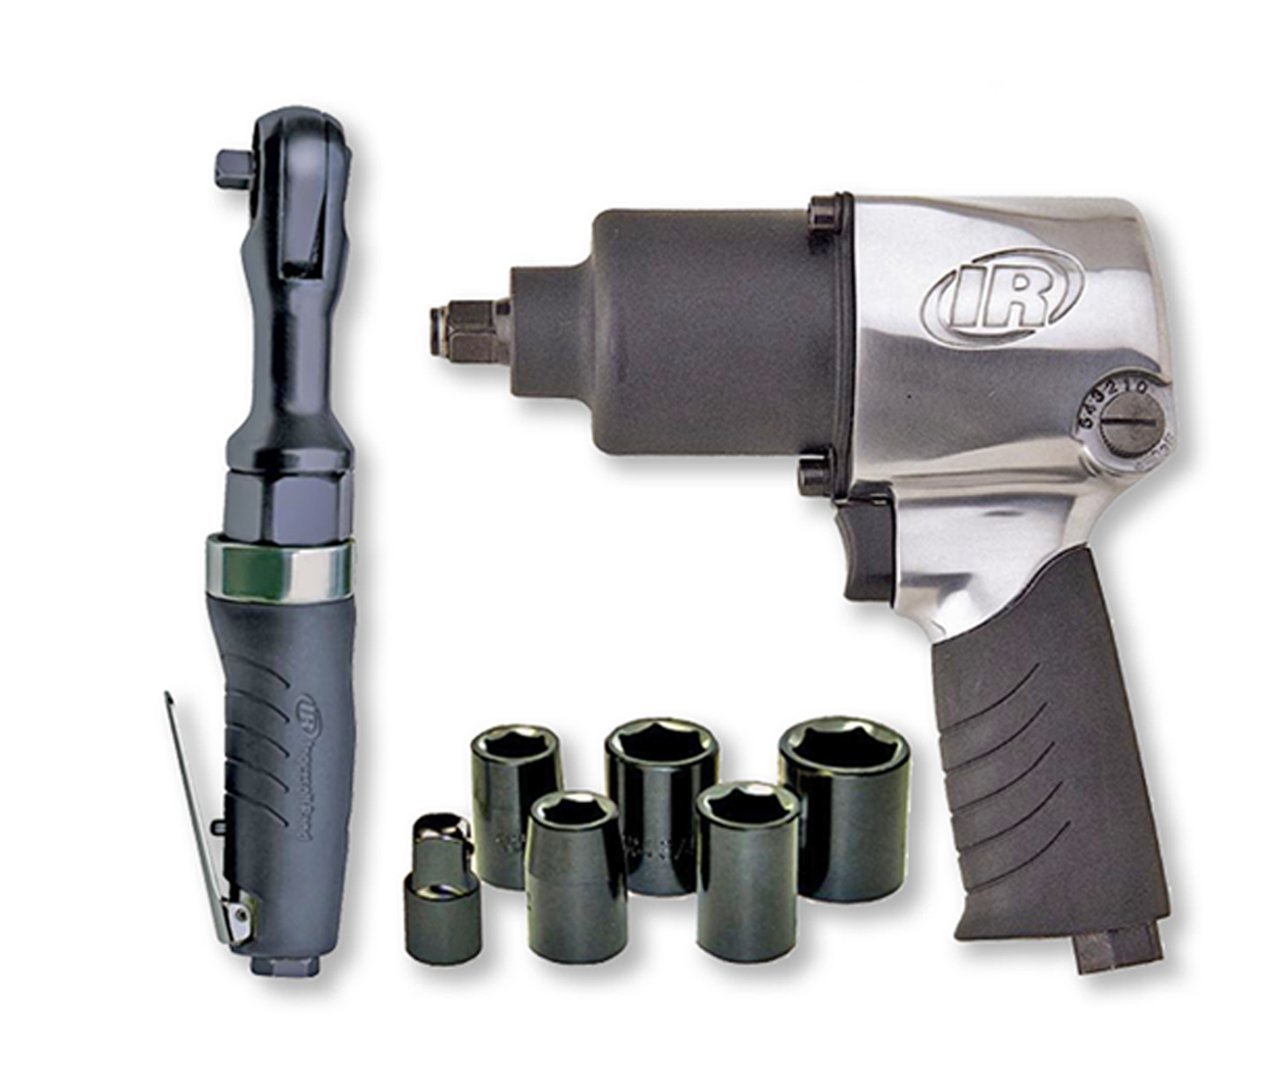 Ingersoll Rand 2317G Edge Series Air Impactool and Ratchet Kit, Black by Ingersoll-Rand